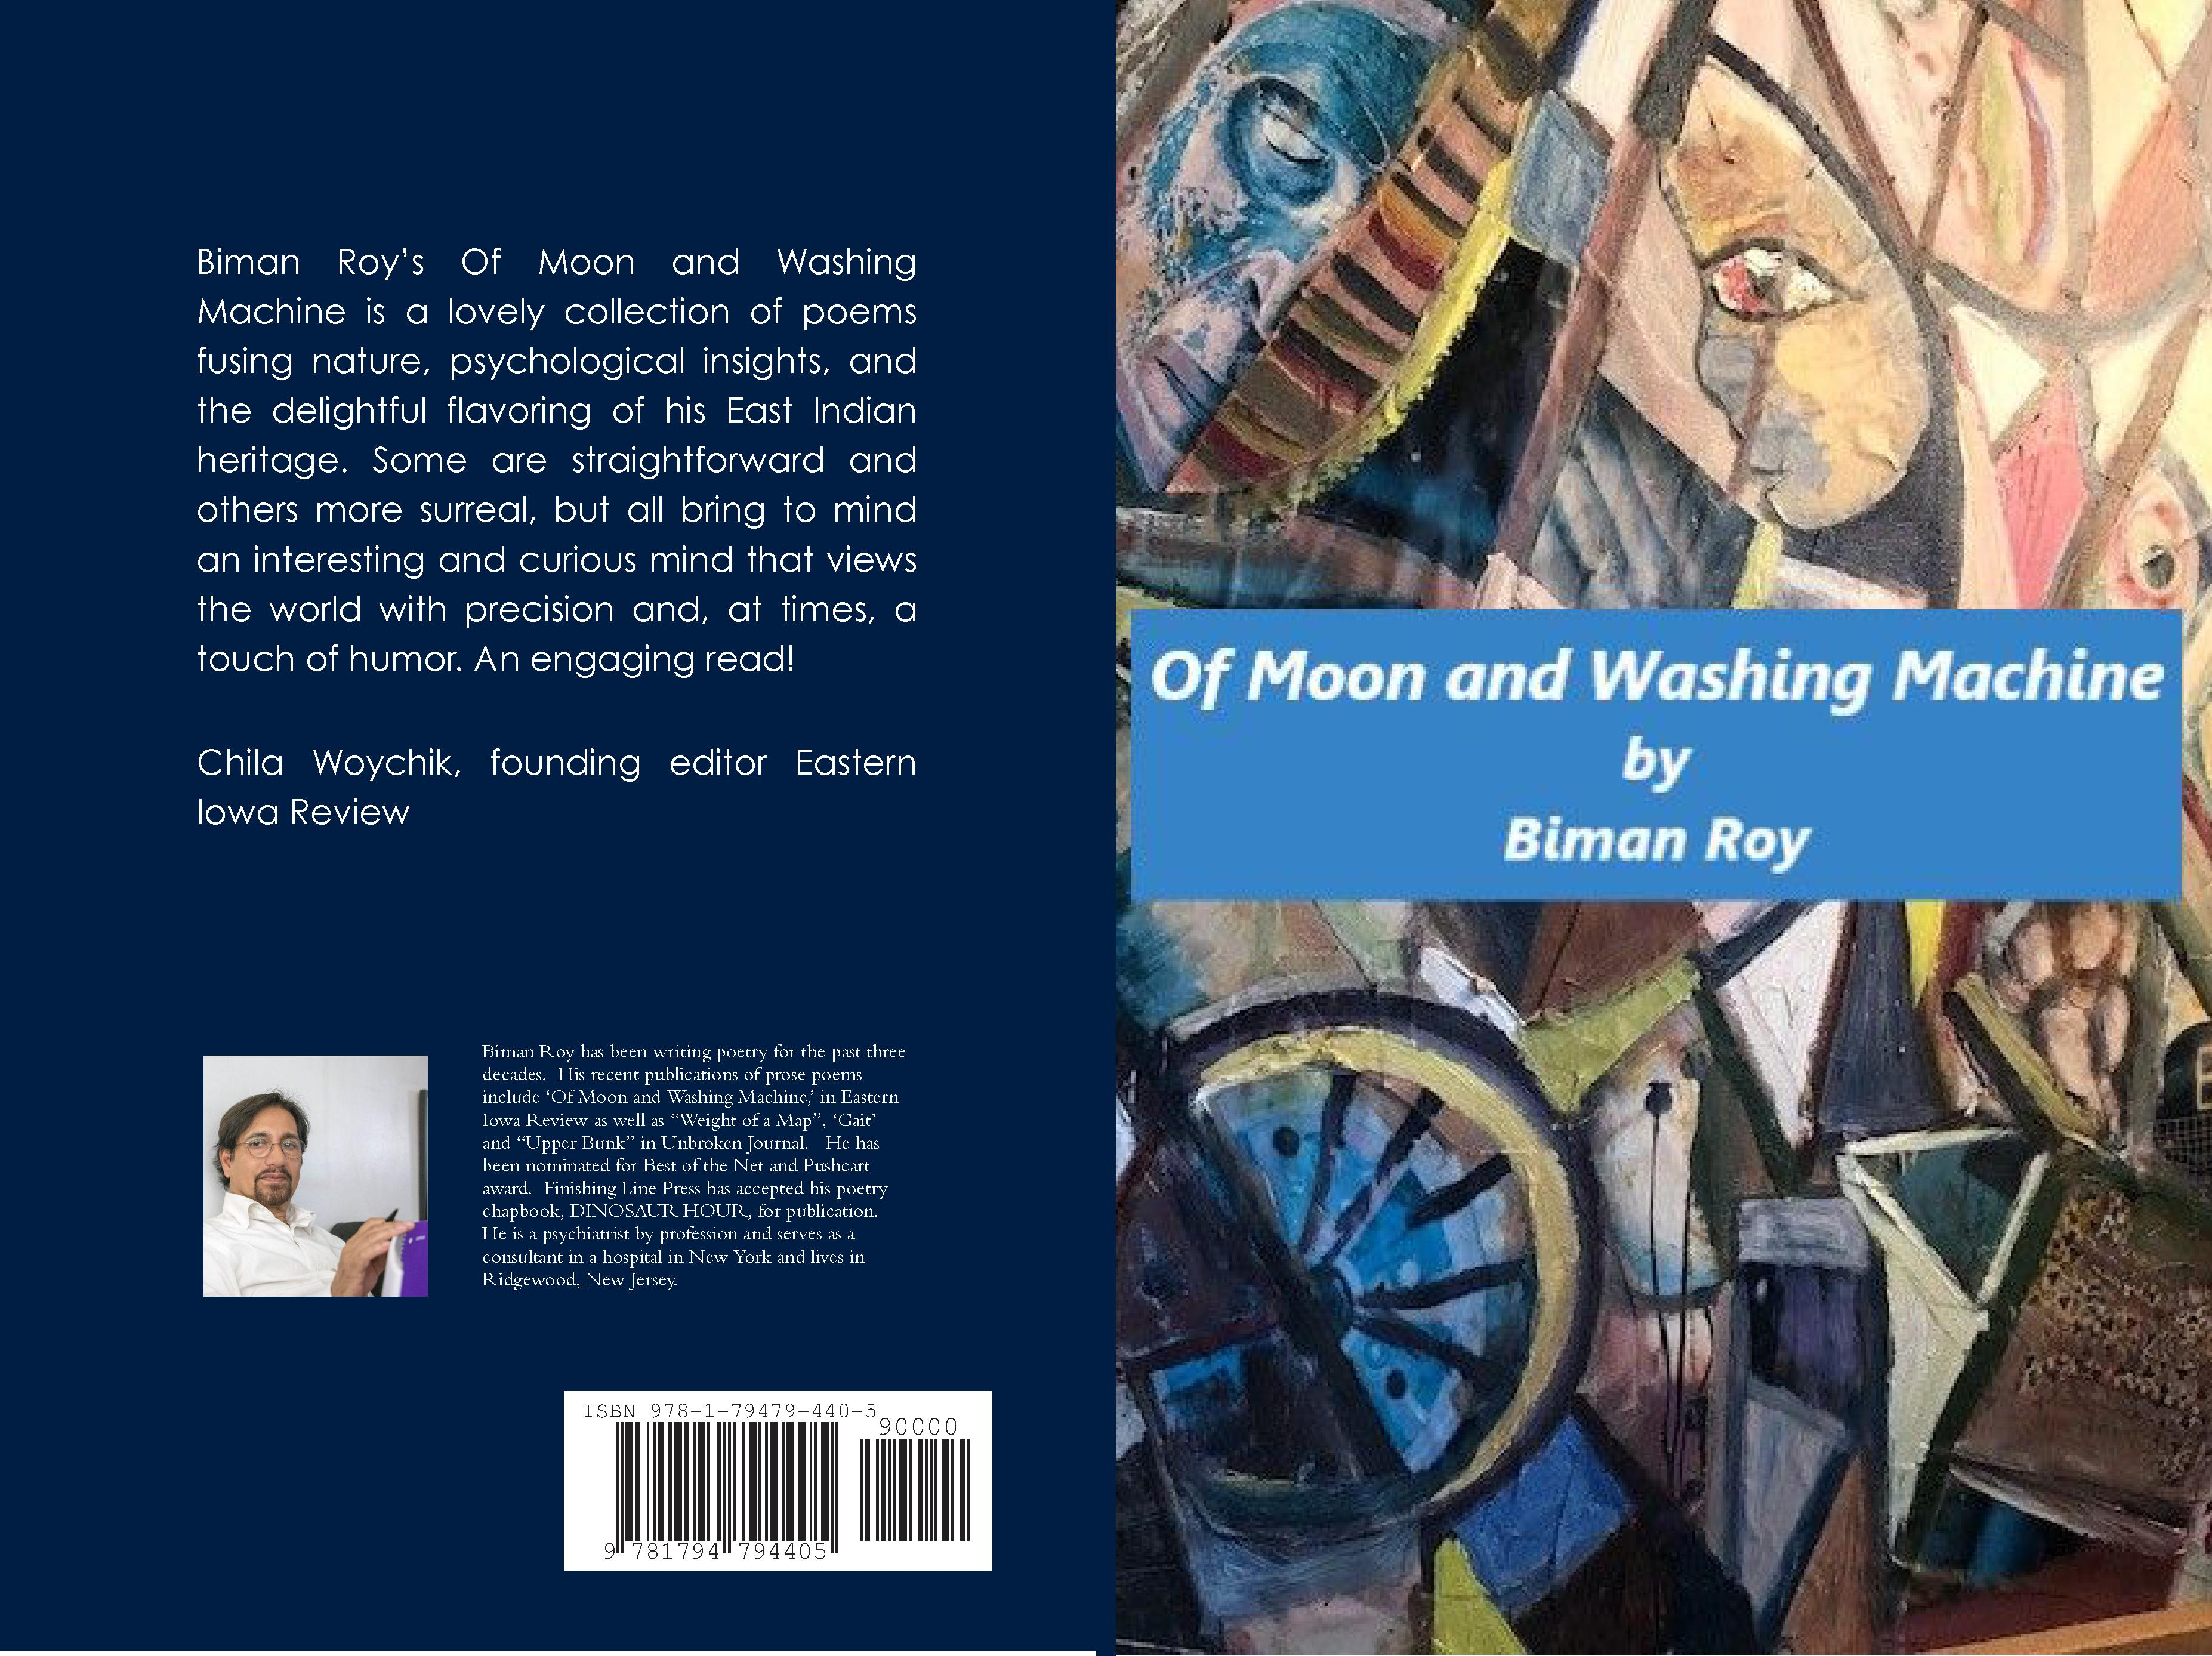 Biman Roy Of Moon and Washing COVERS GALLEY 004